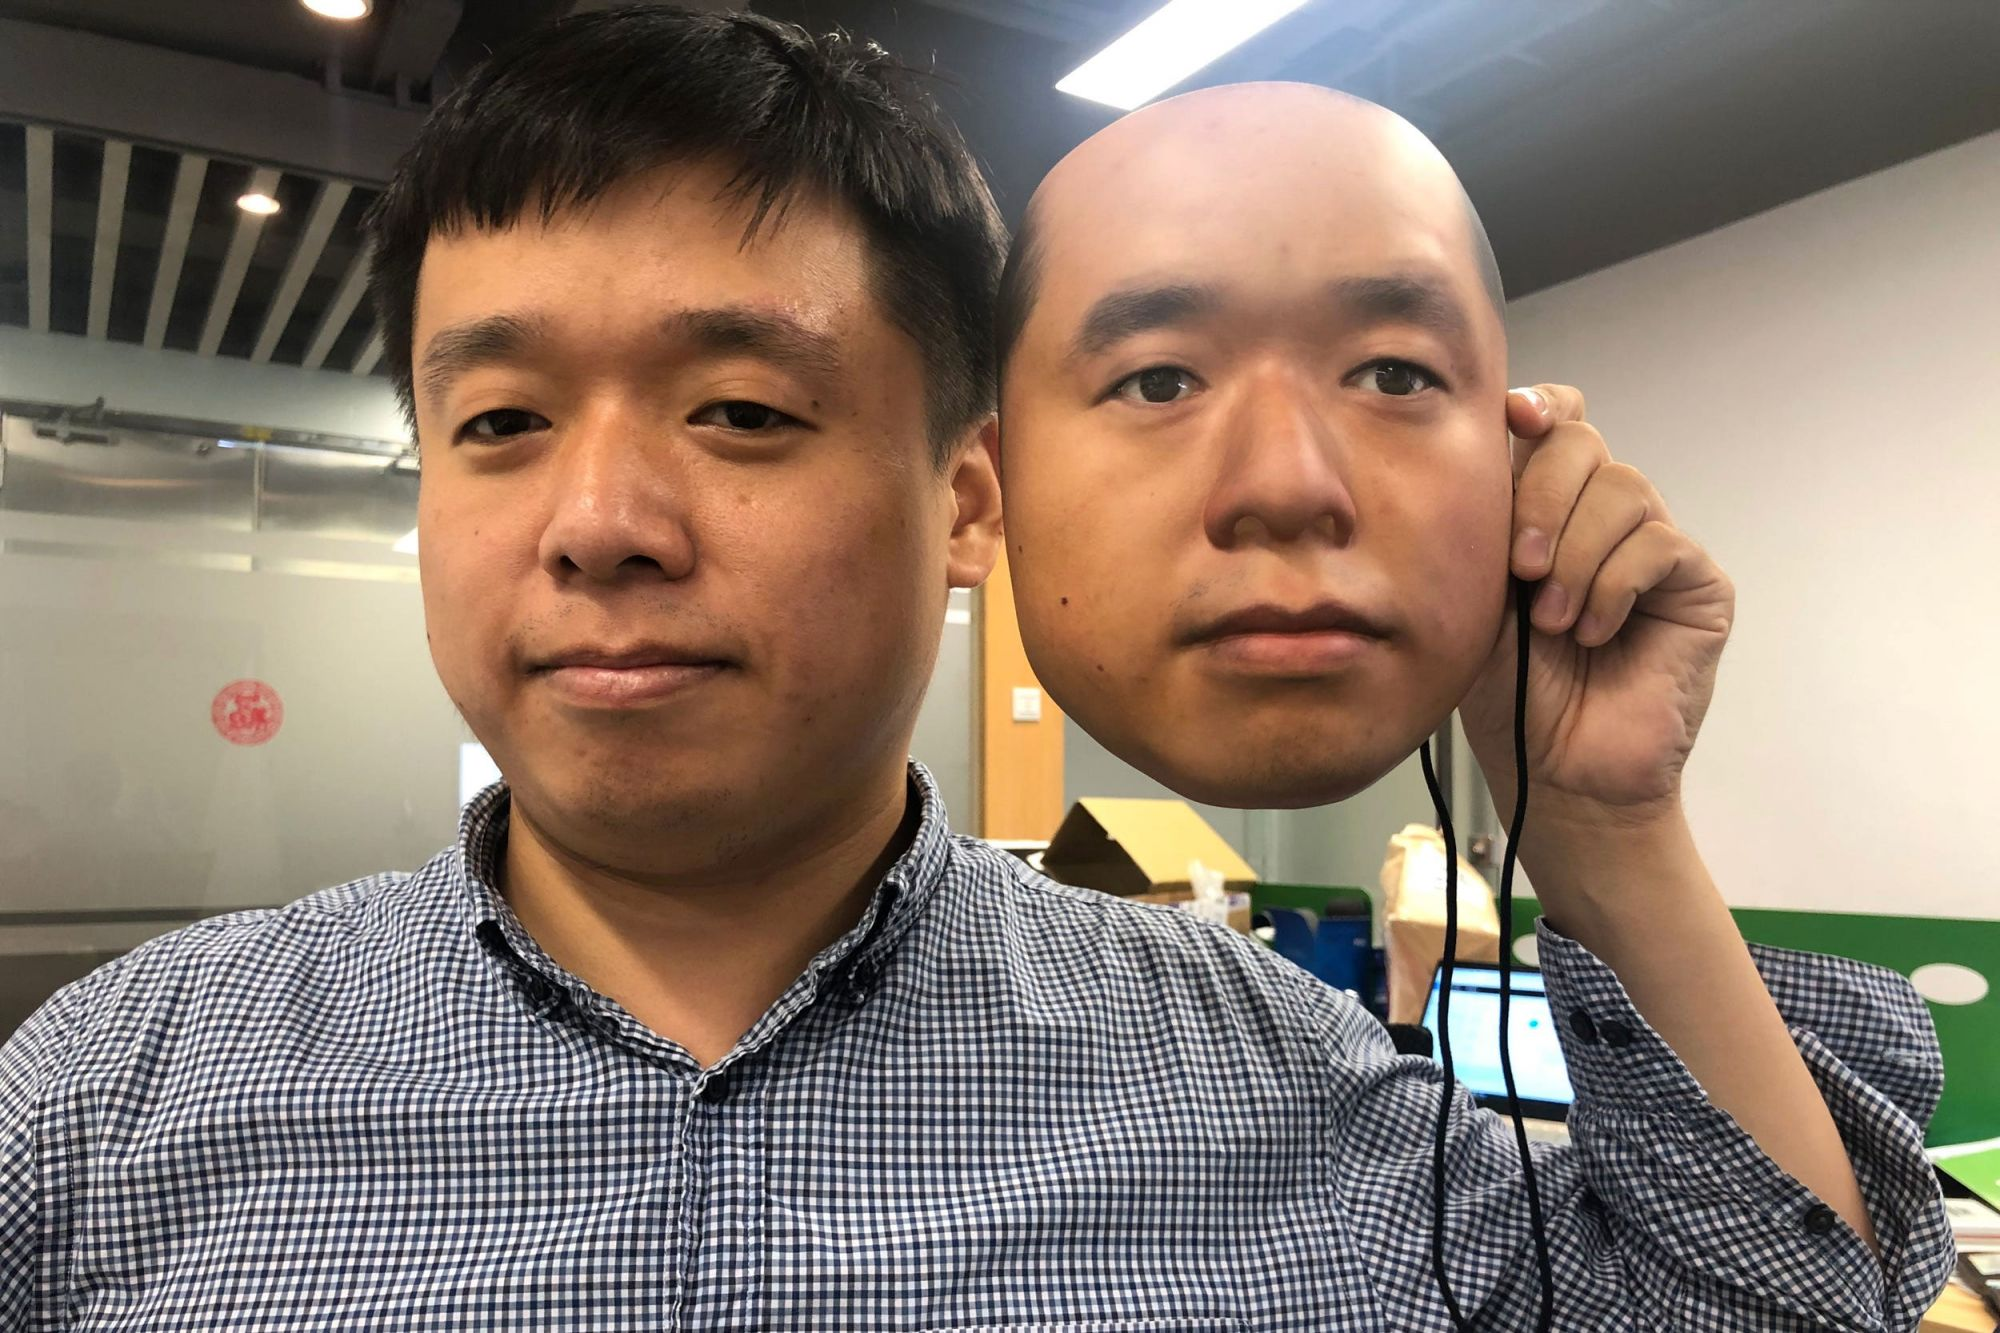 Paper Masks Are Fooling Facial Recognition Software